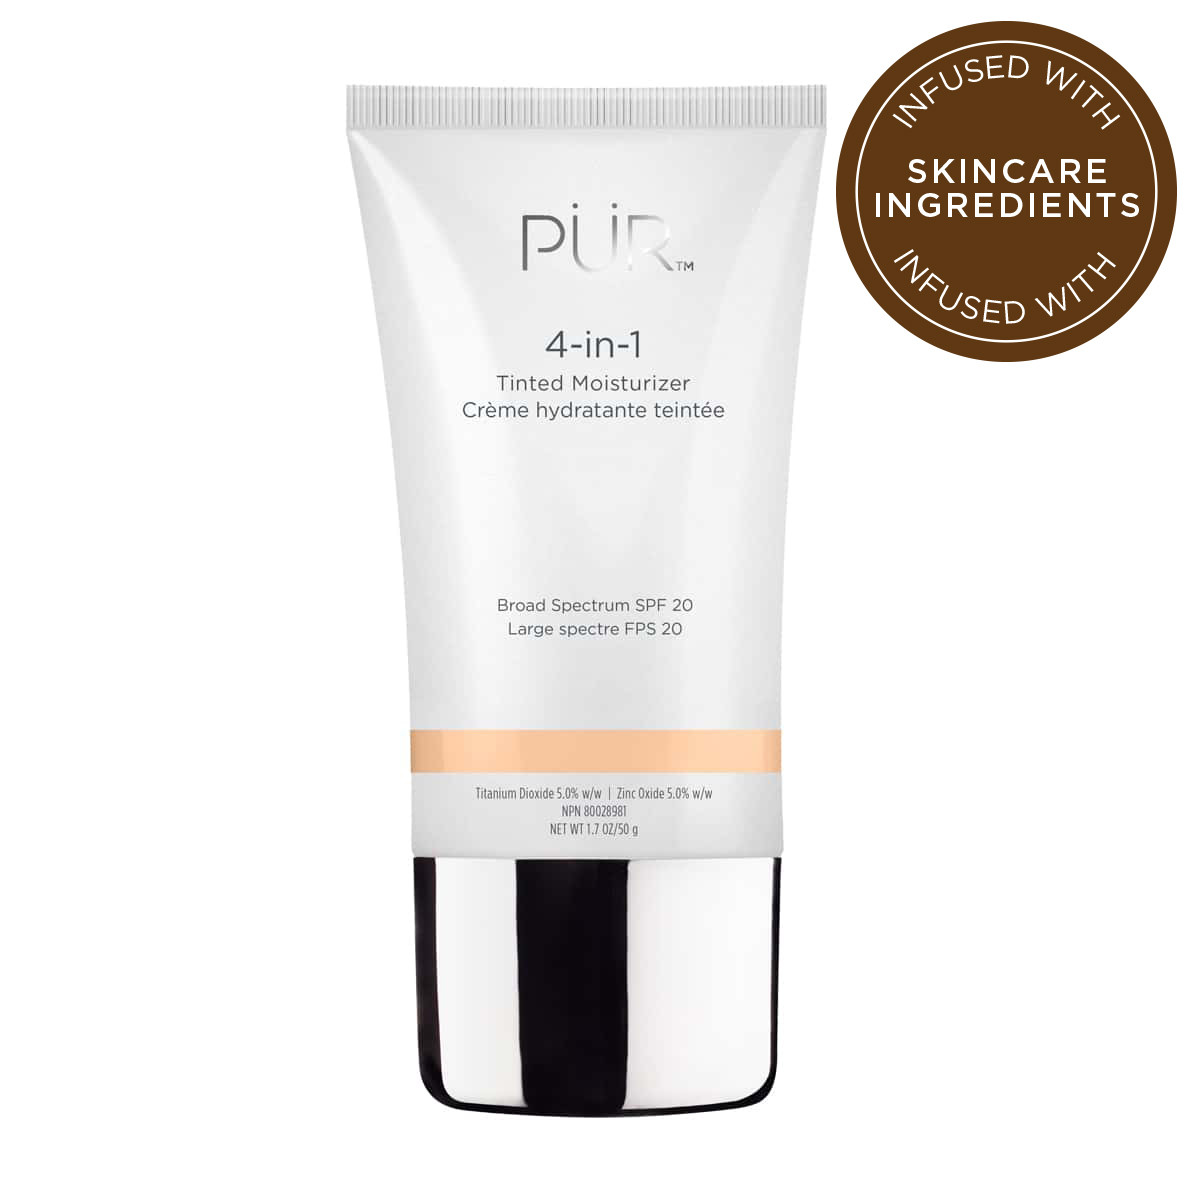 4-in-1 Tinted Moisturizer in Light